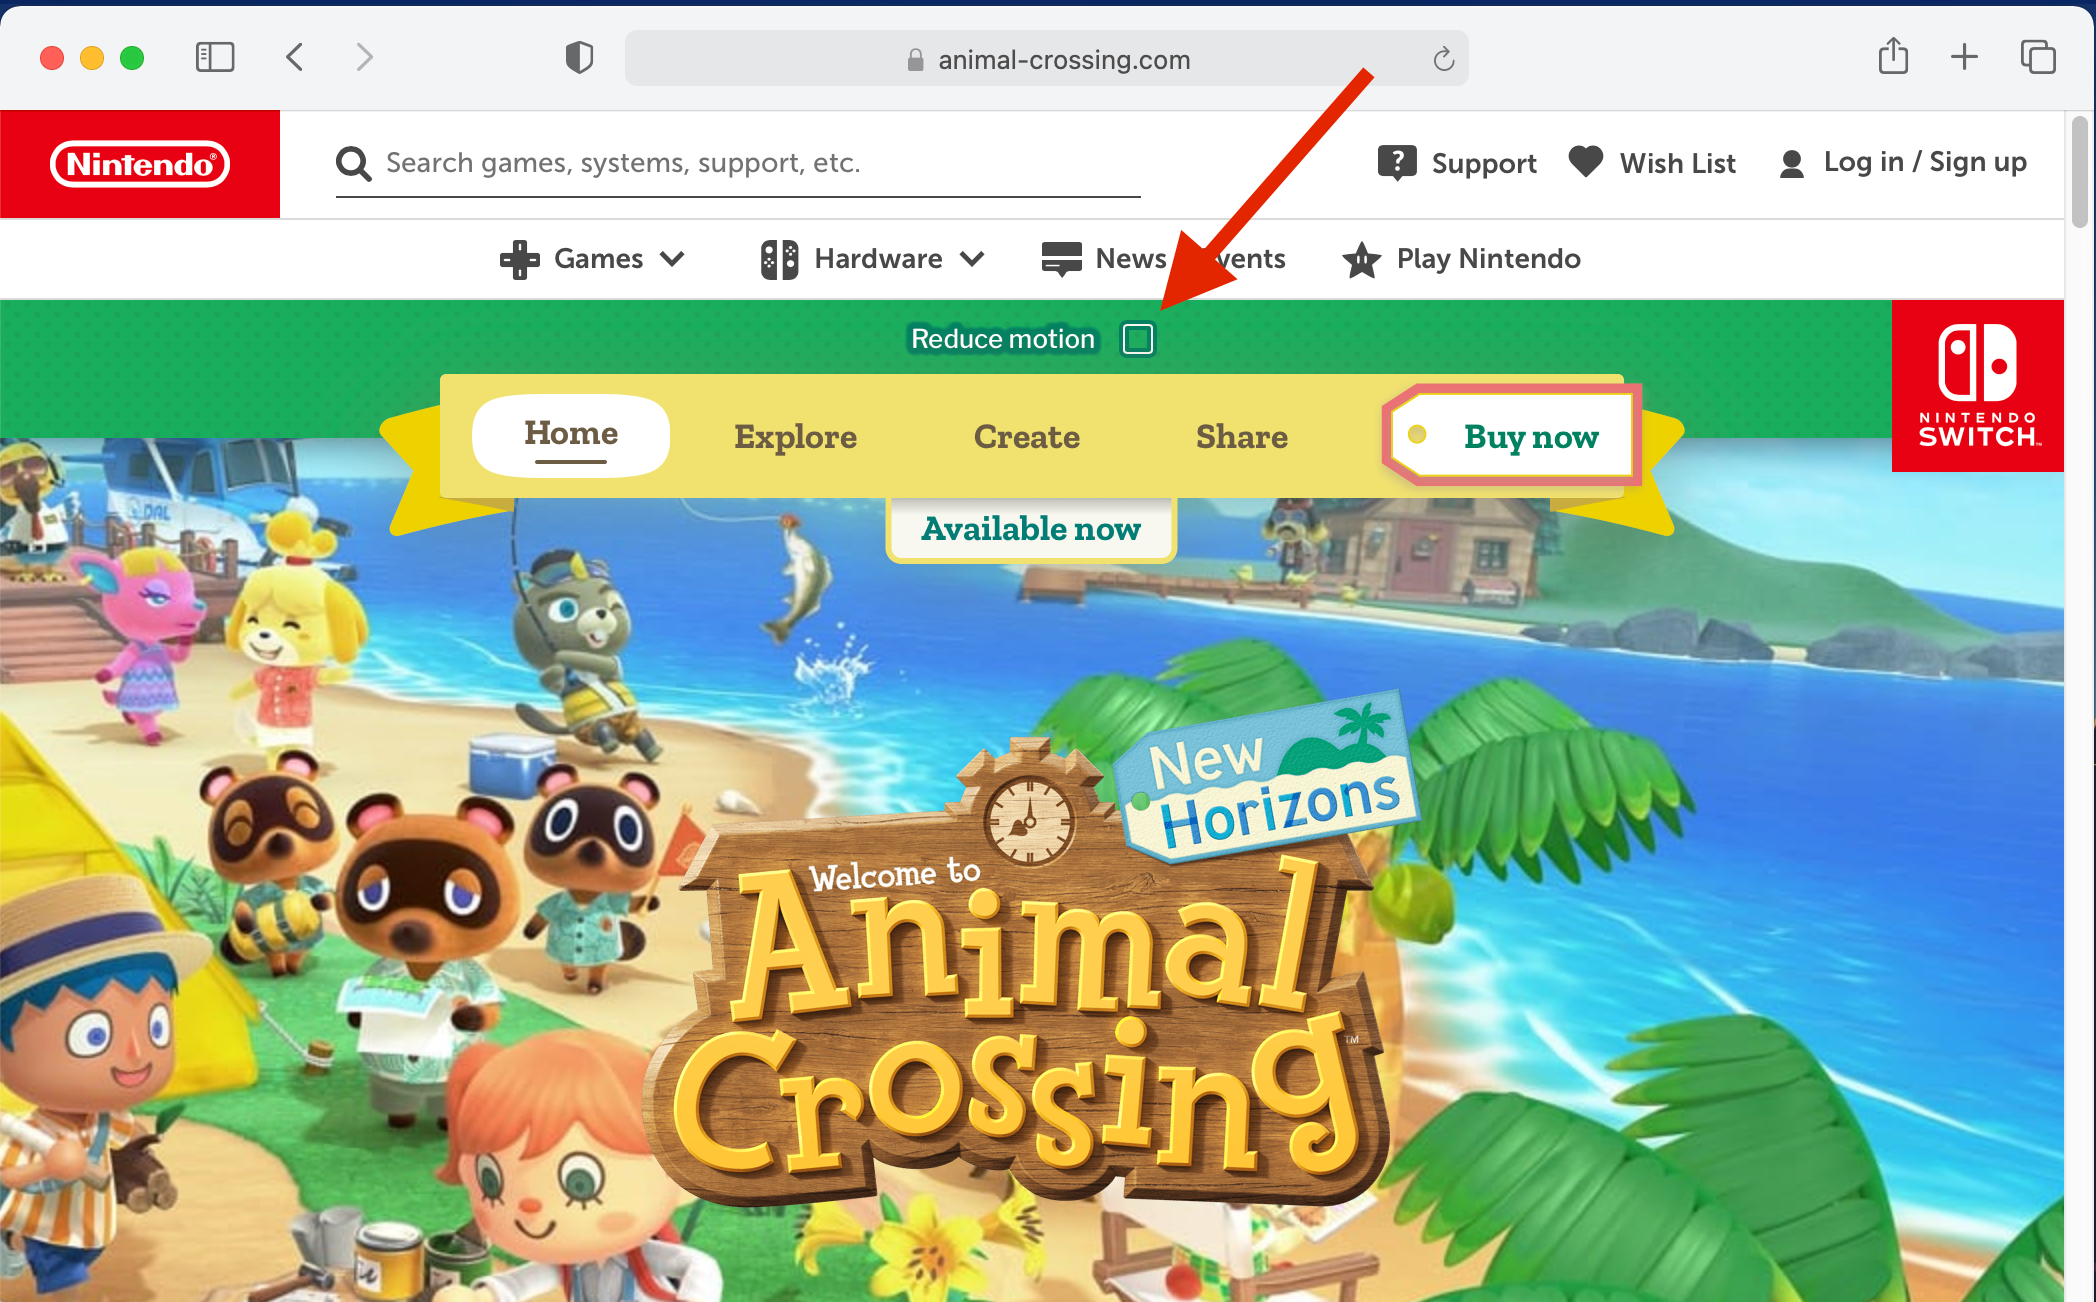 Screenshot of the animal crossing game website that is bright with a solid green header above a gold ribbon that displays menu items. Below is the main banner showing a still of the animated game with a wooden welcome to Animal Crossing sign in the foreground.